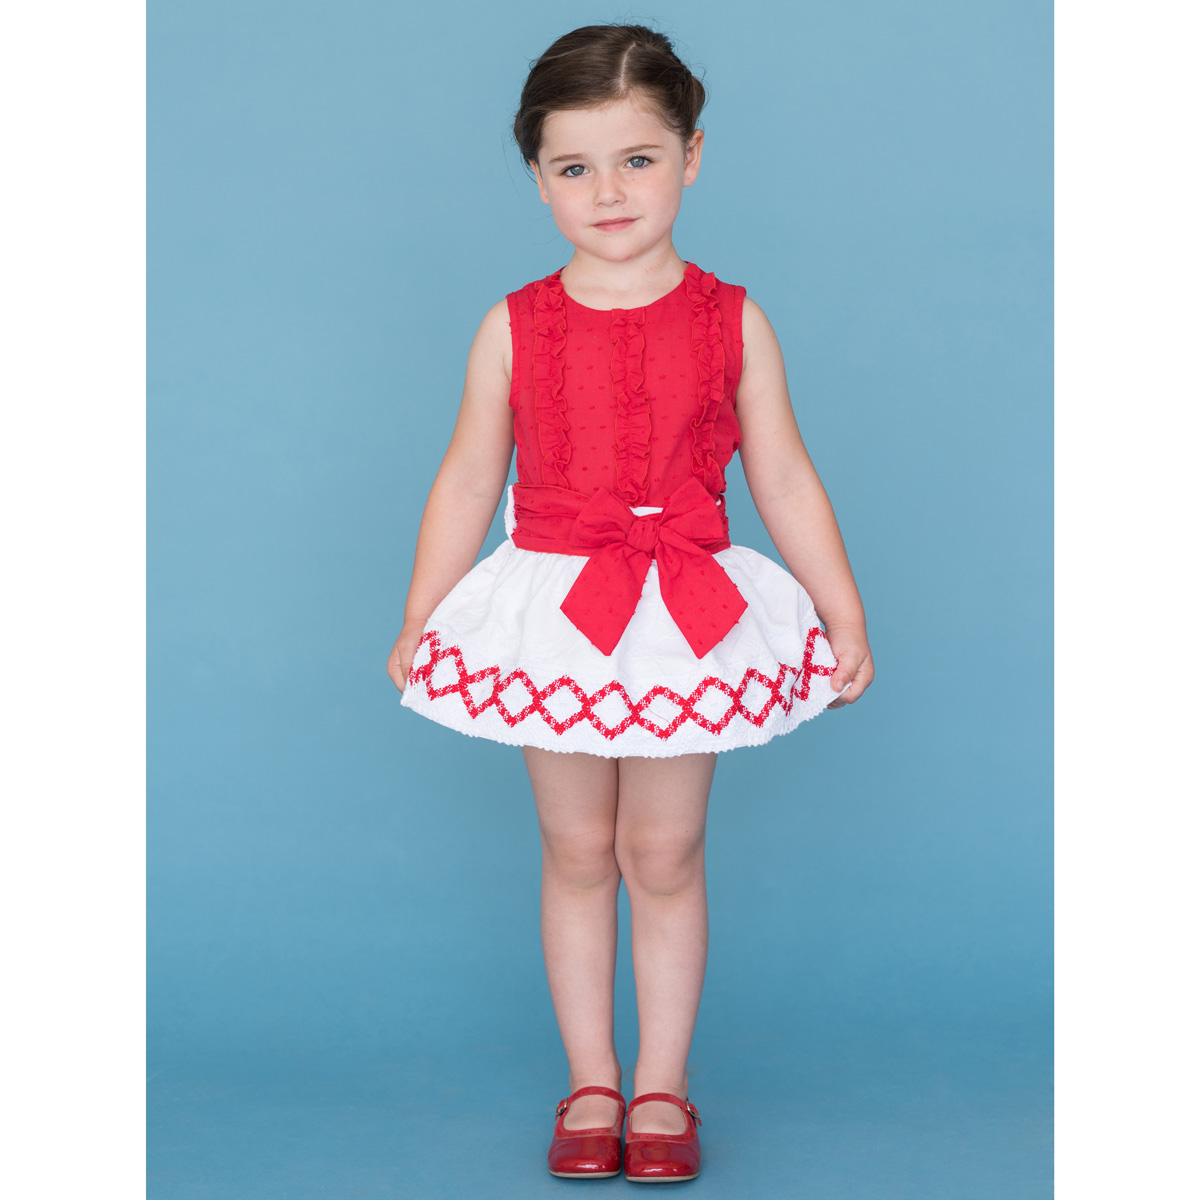 Red Top White Skirt Girls Outfit From Spanish Dolce Petit